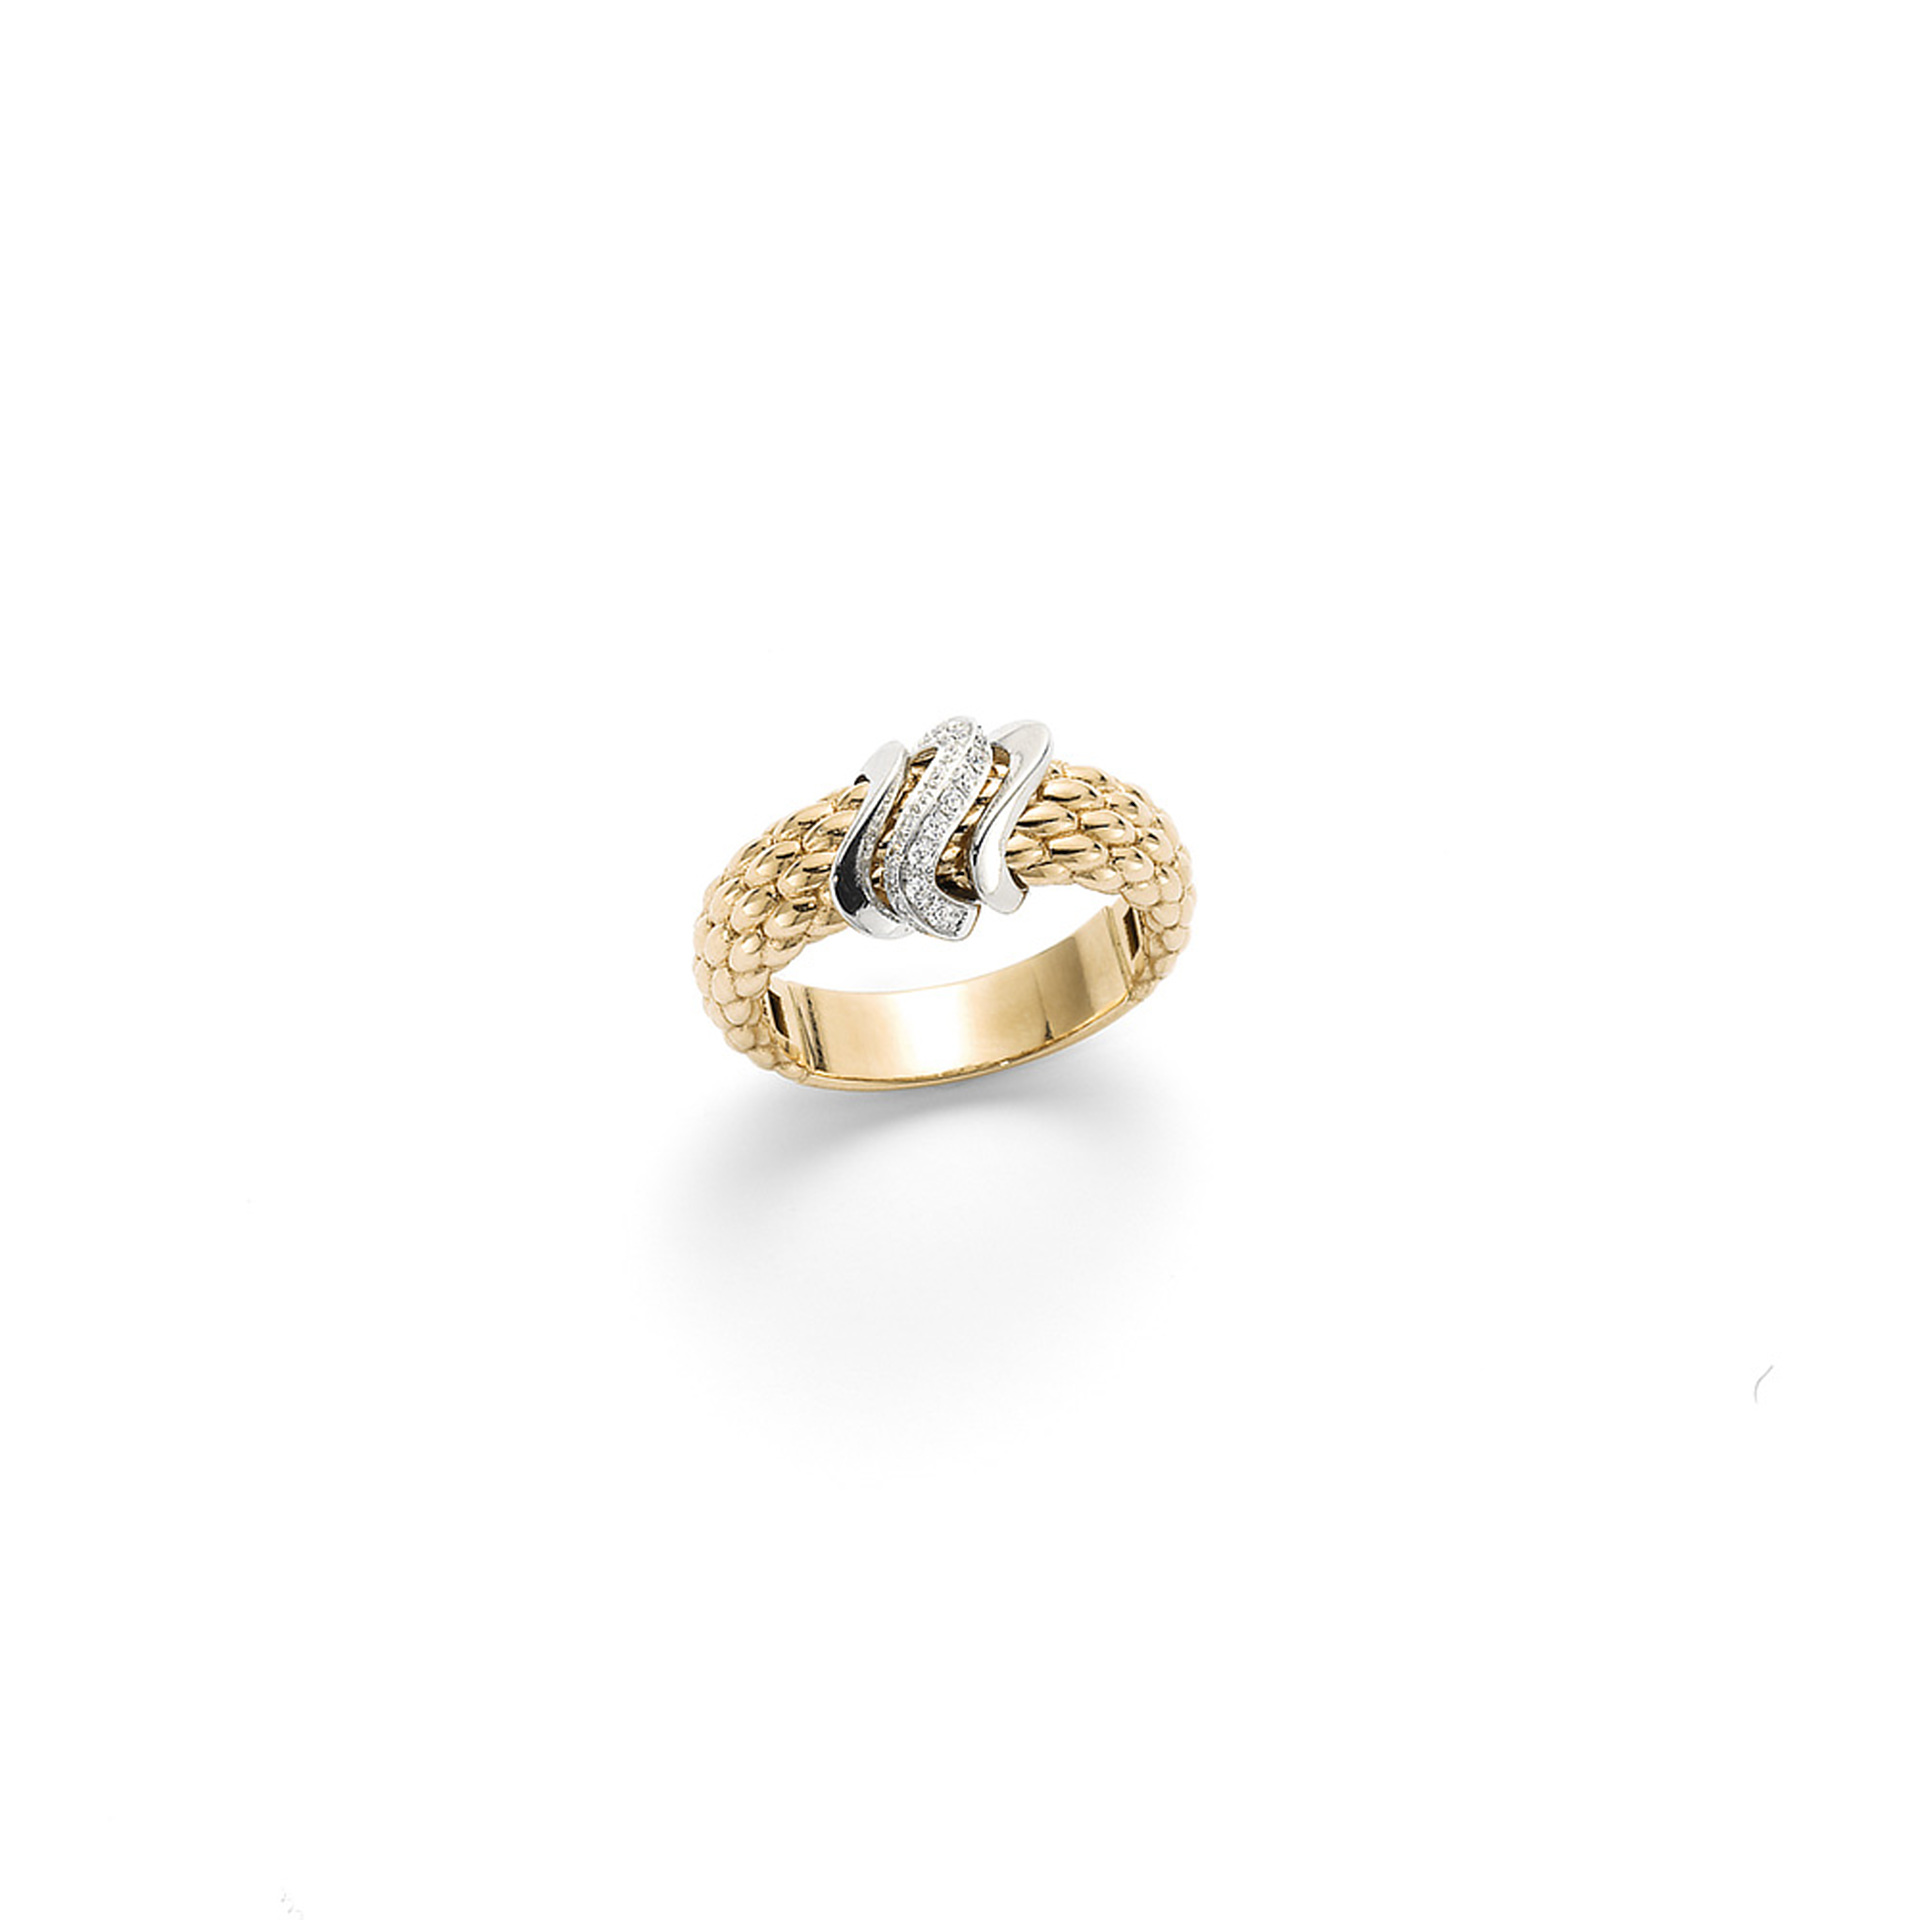 Fope 18ct Yellow Gold Flex'It Vendome Diamond Ring